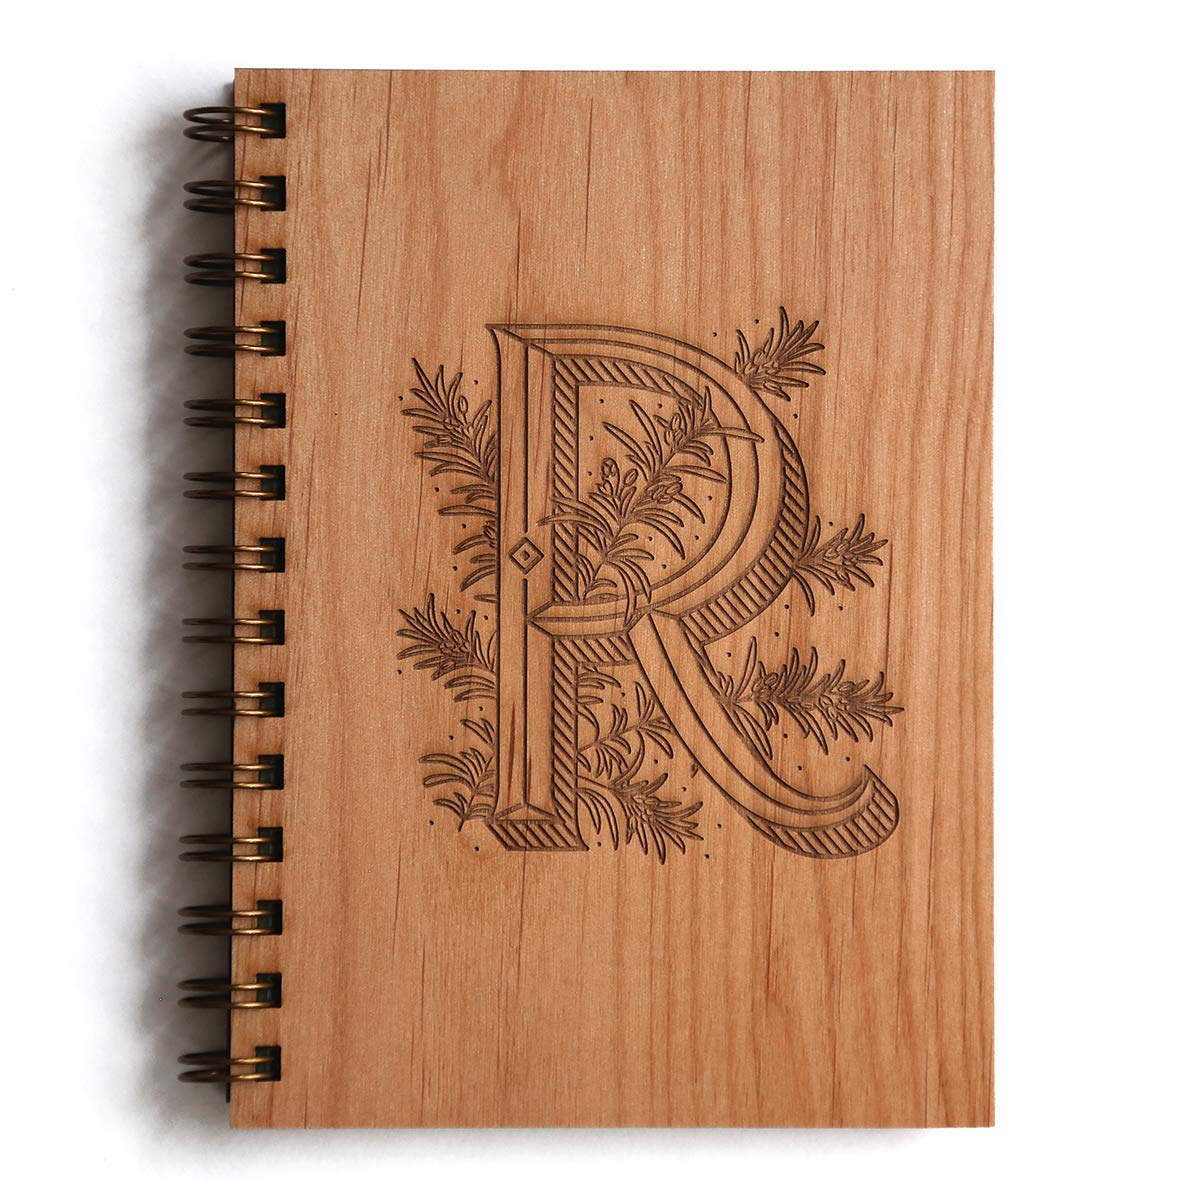 Floral Monogram R Initial Laser Cut Wood Journal - Other Letters Available (Notebook/Birthday Gift/Gratitude Journal/Mother's Day Gift/Handmade)